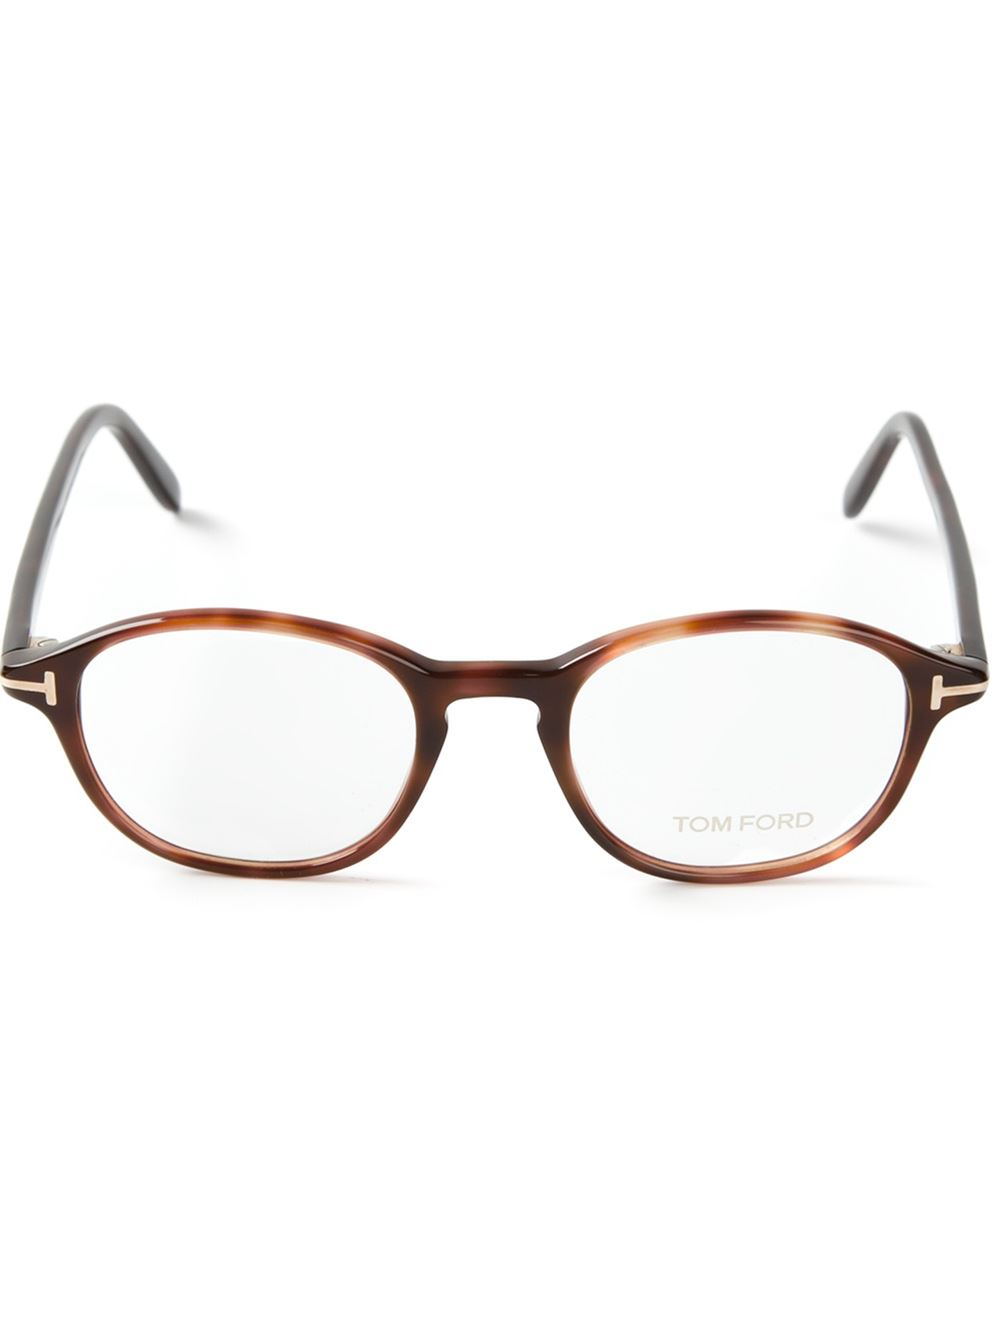 6c1bee8c8b8 Lyst - Tom Ford Tortoise Shell Glasses in Brown